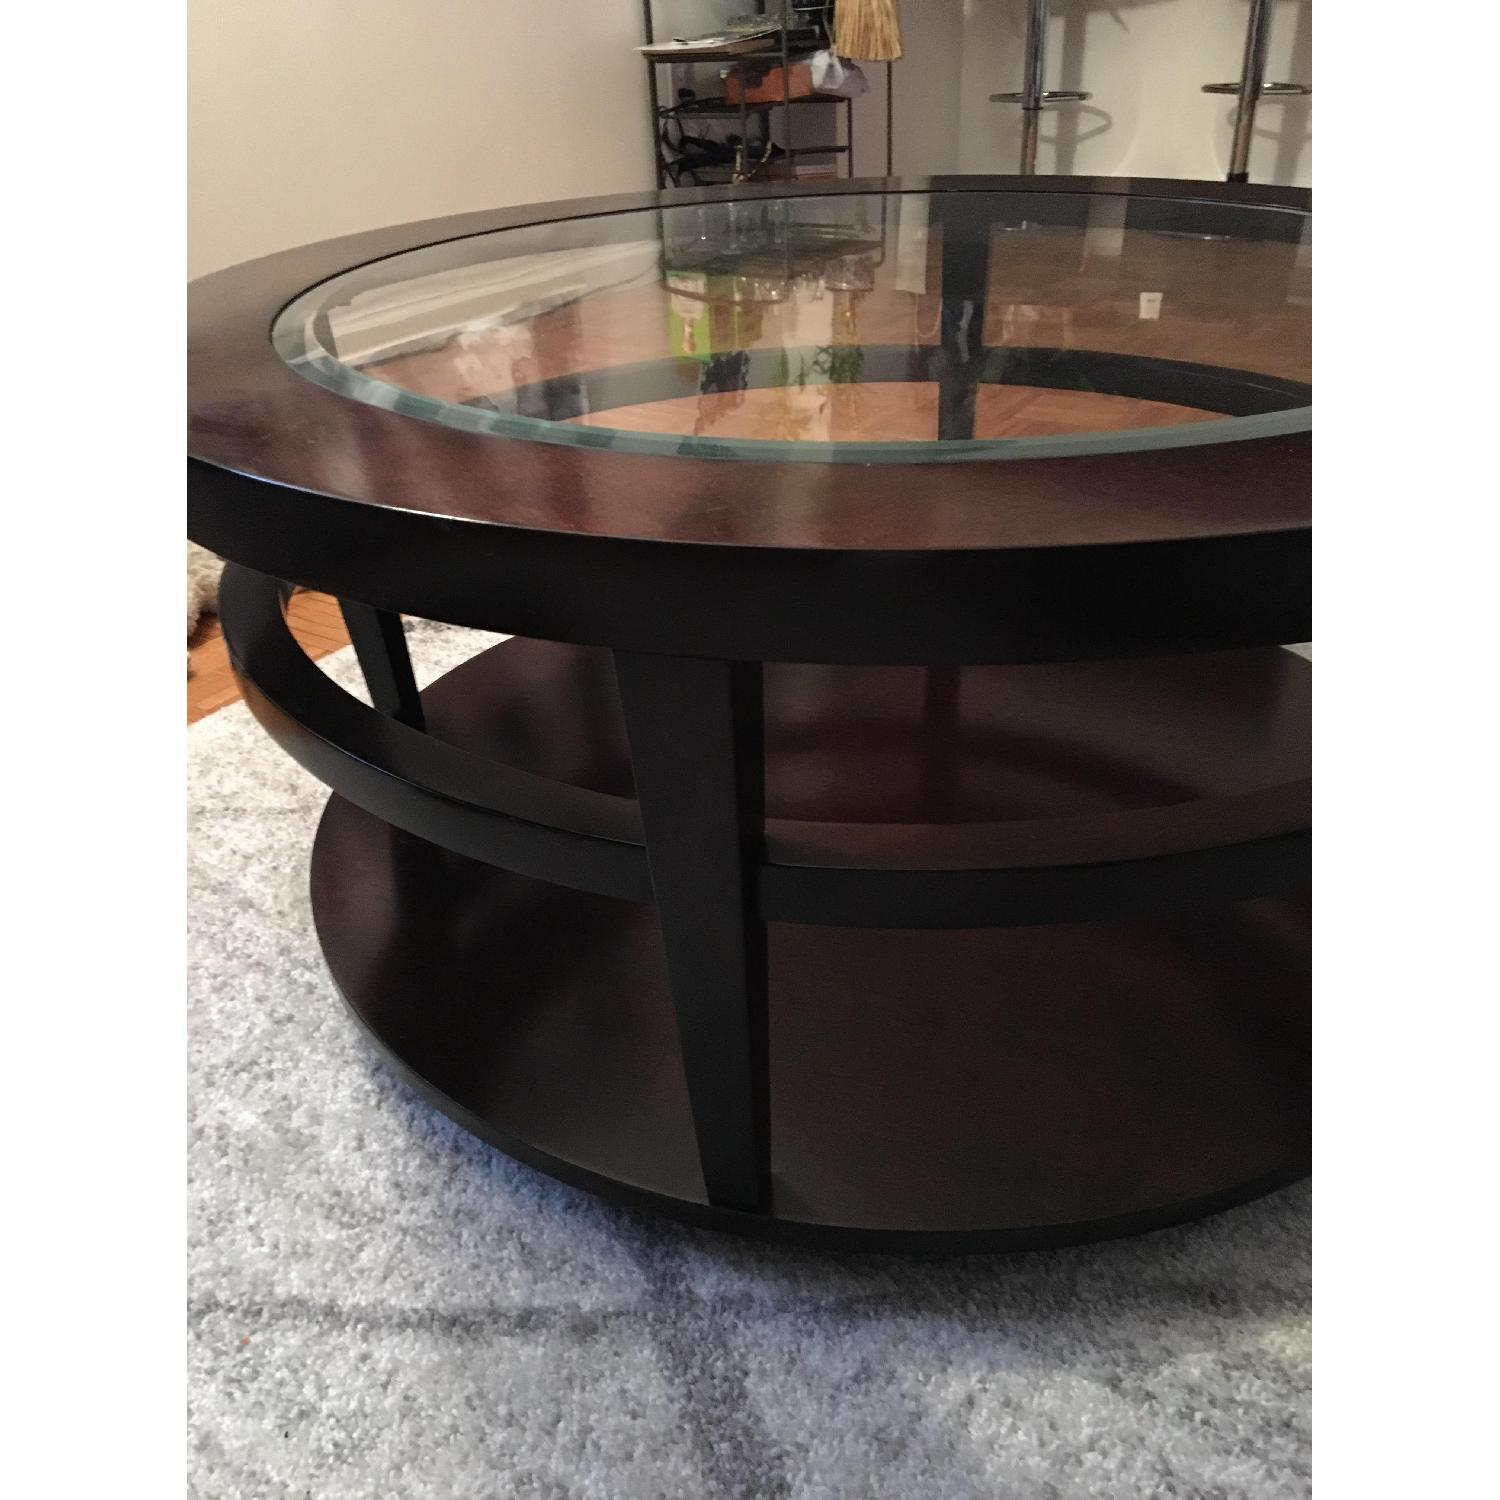 Macy's Round Wood/Glass Coffee Table on Casters - image-3